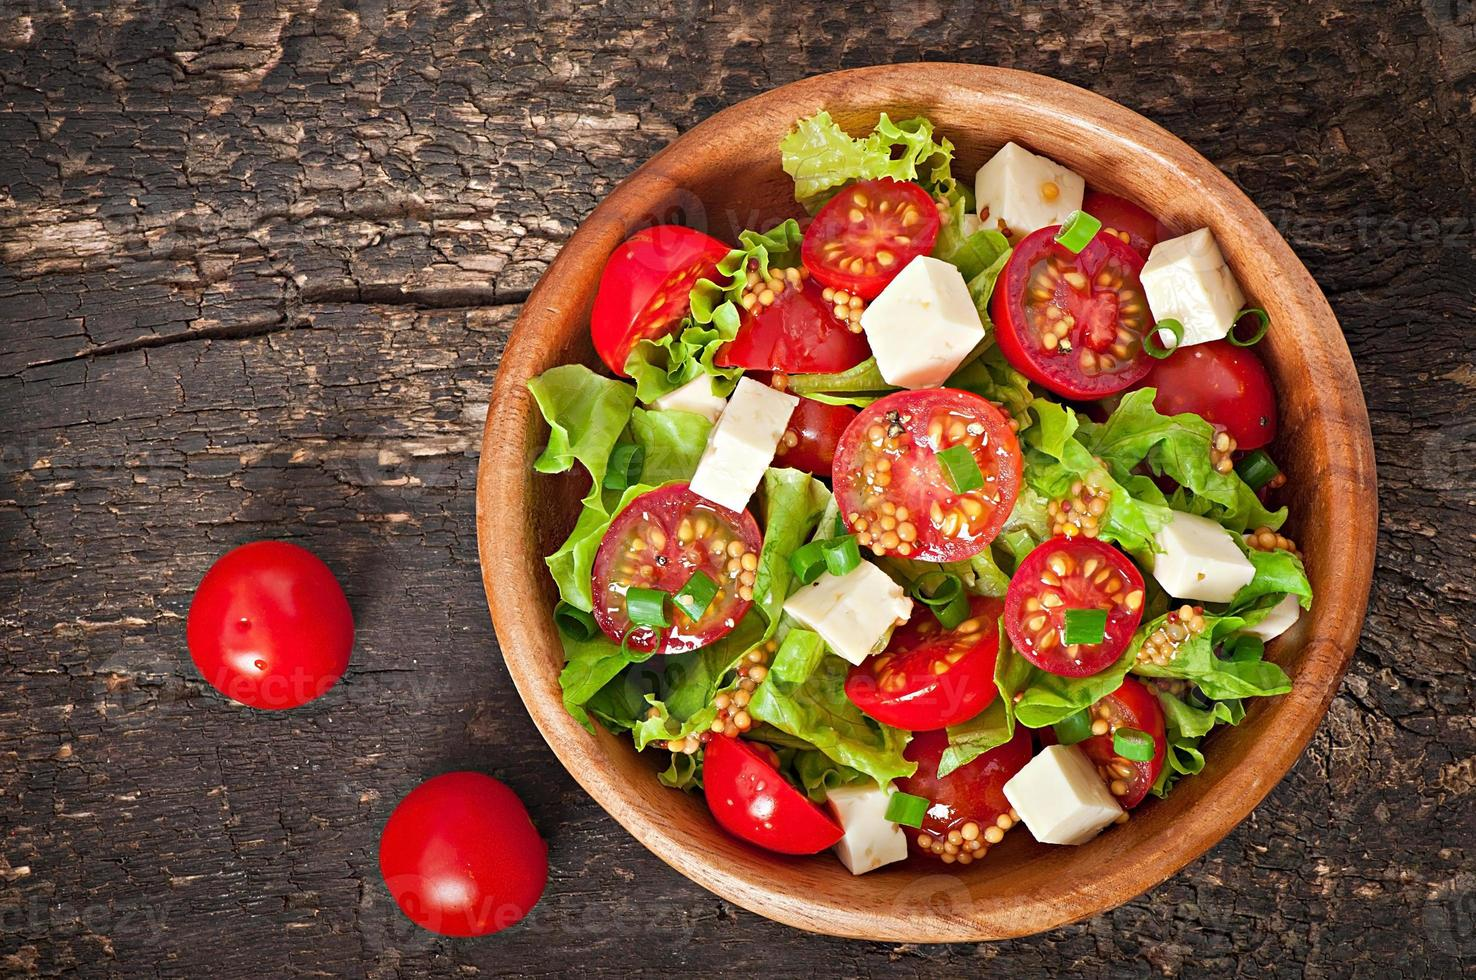 Tomato salad with lettuce, cheese and mustard and garlic dressing photo